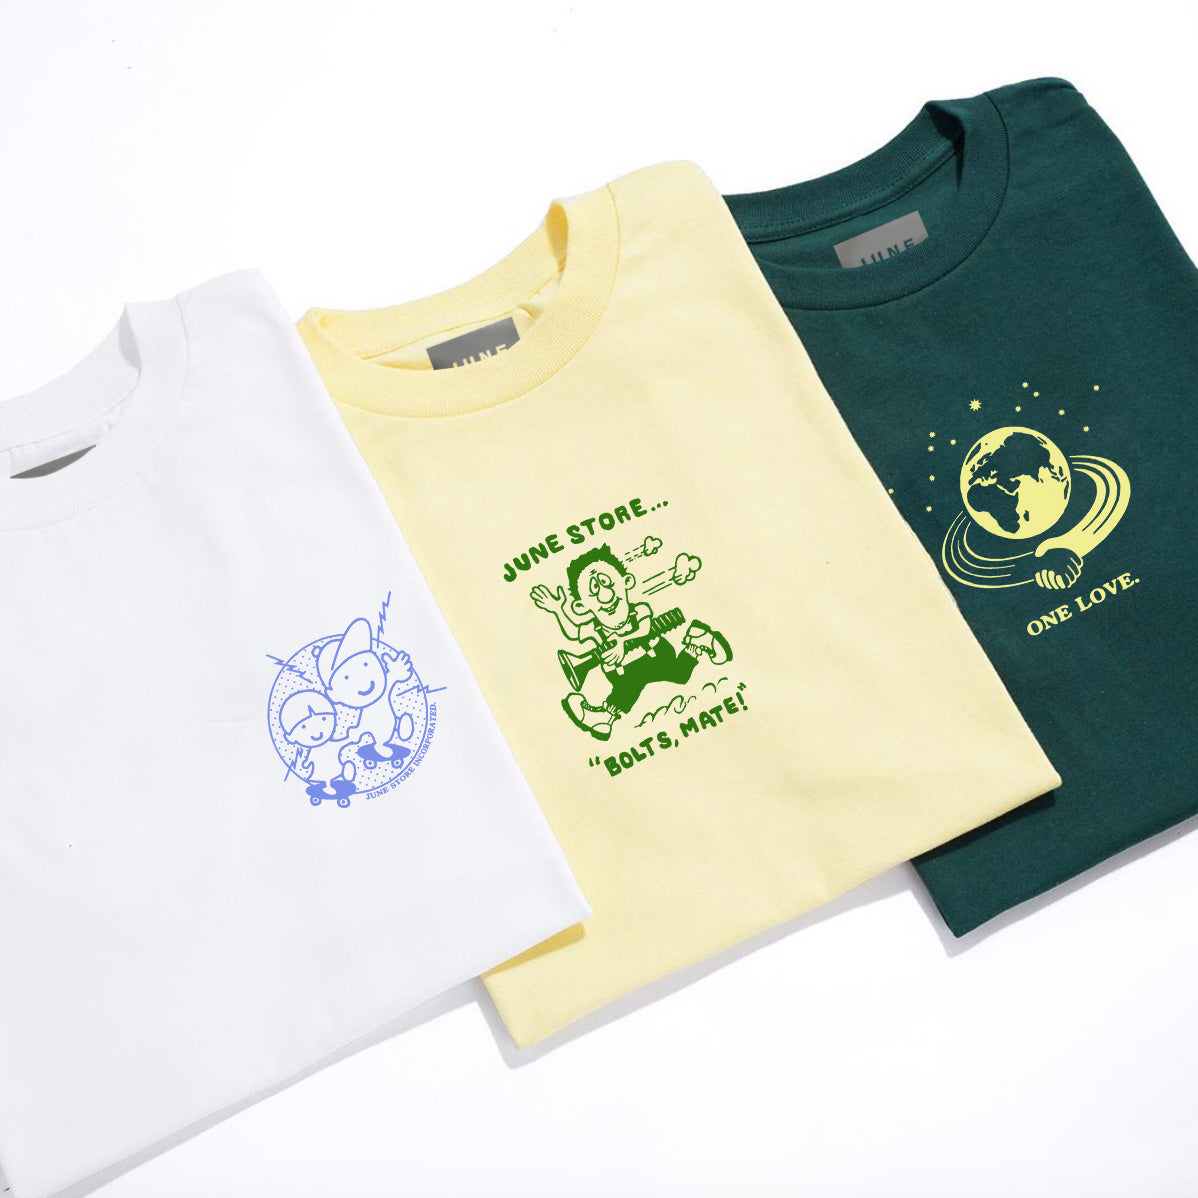 June - 'GLOBE' Mens Tee - White, Green